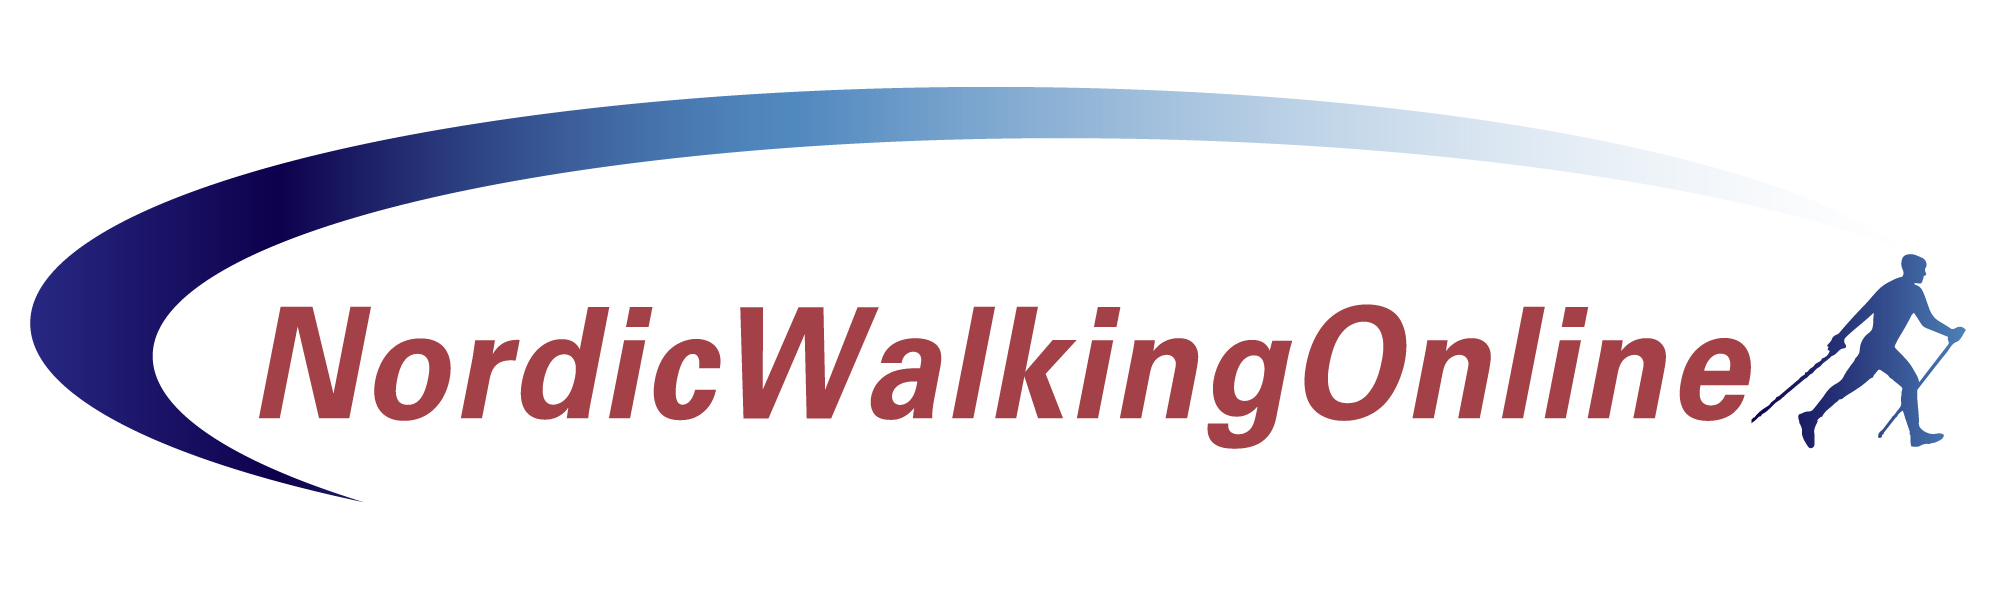 Nordic Walking Online Cropped-01.jpg